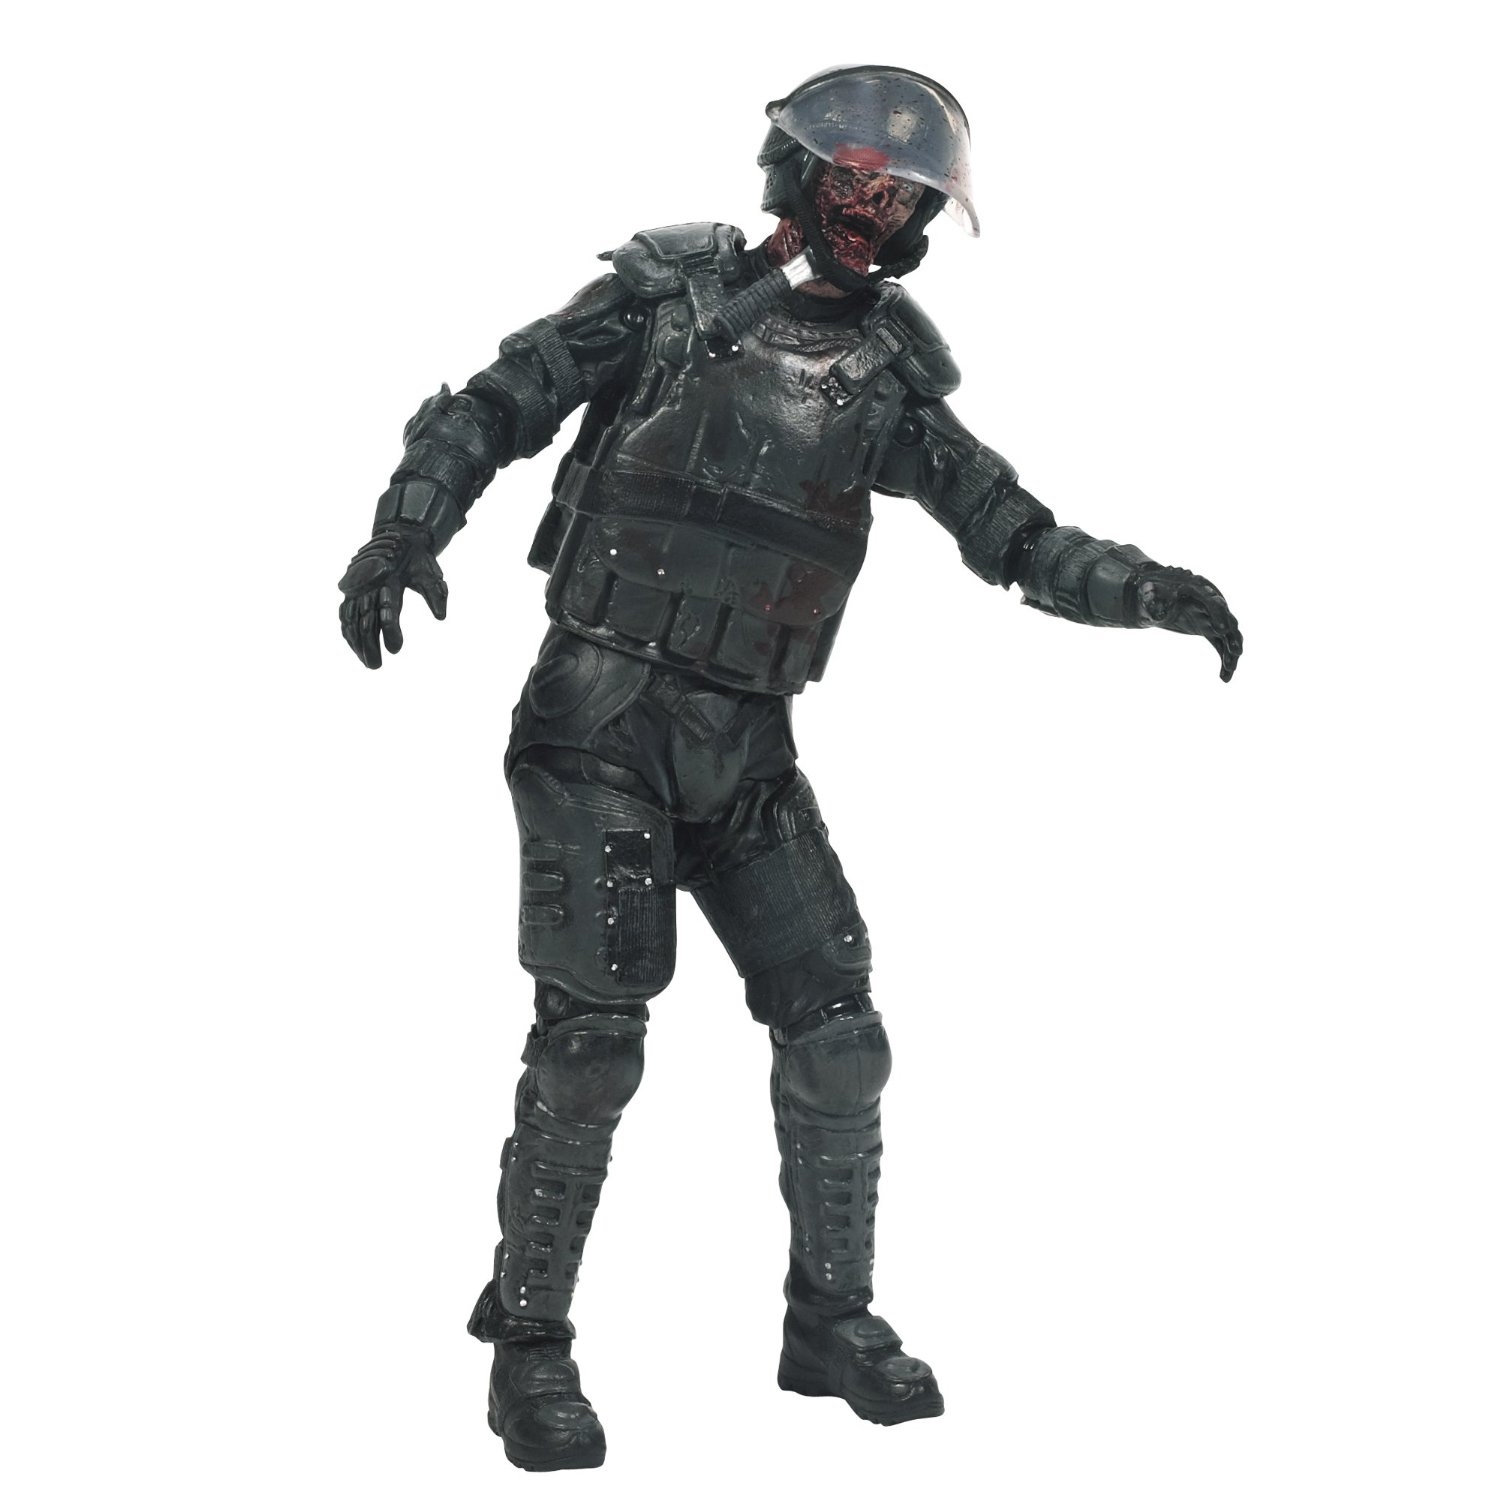 The Walking Dead Action Figure Riot Gear Zombie